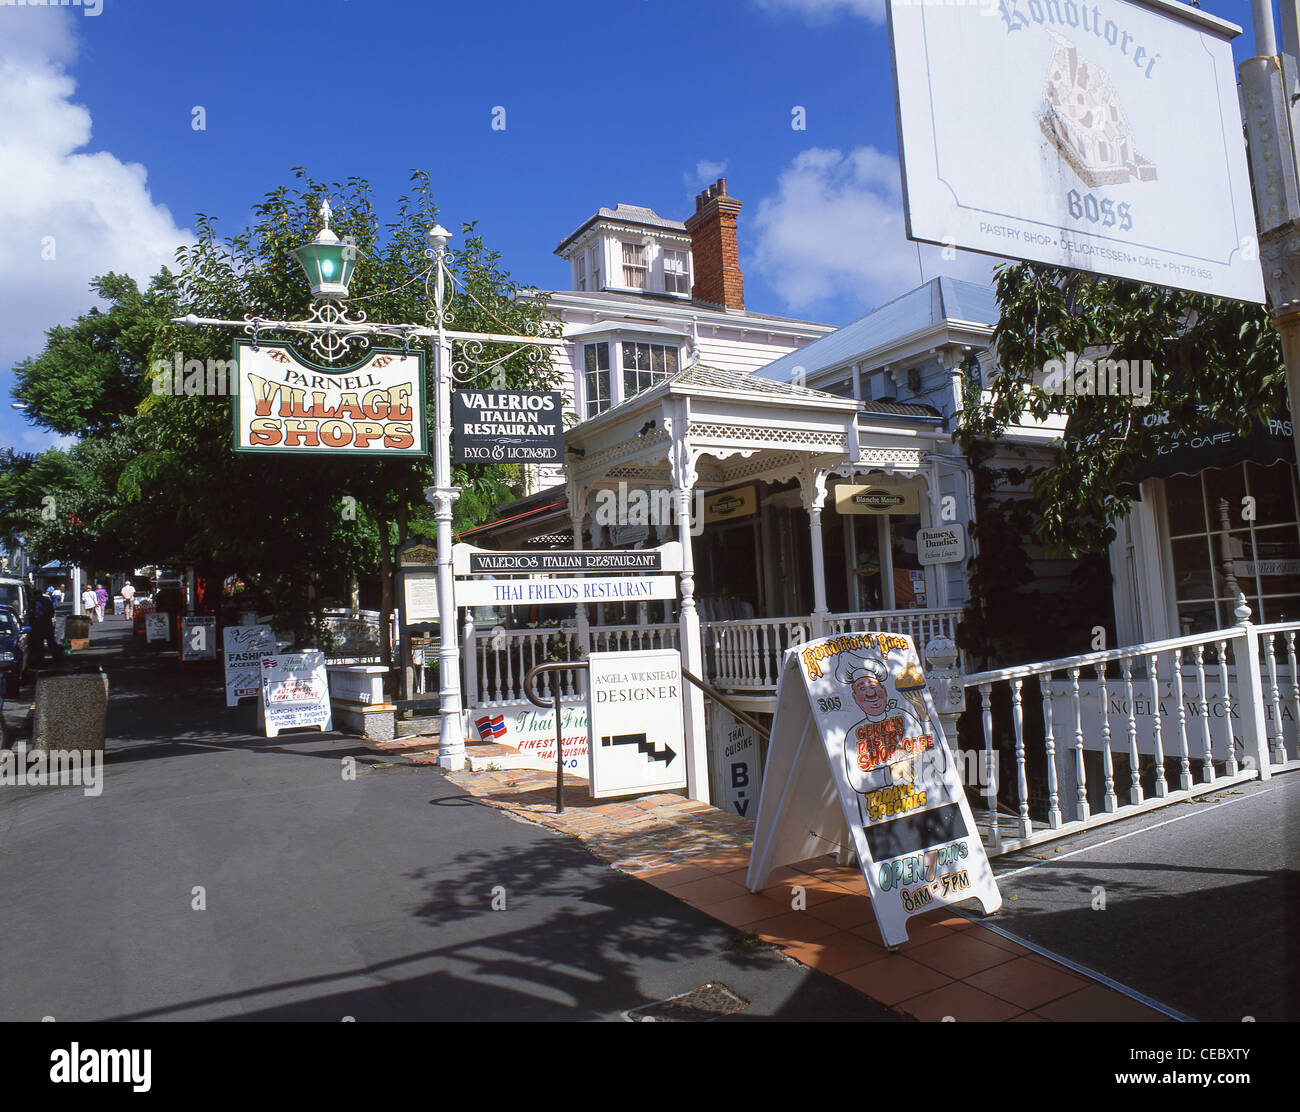 Parnell Village shops, Parnell Rise, Parnell, Auckland, Auckland Region, North Island, New Zealand Stock Photo